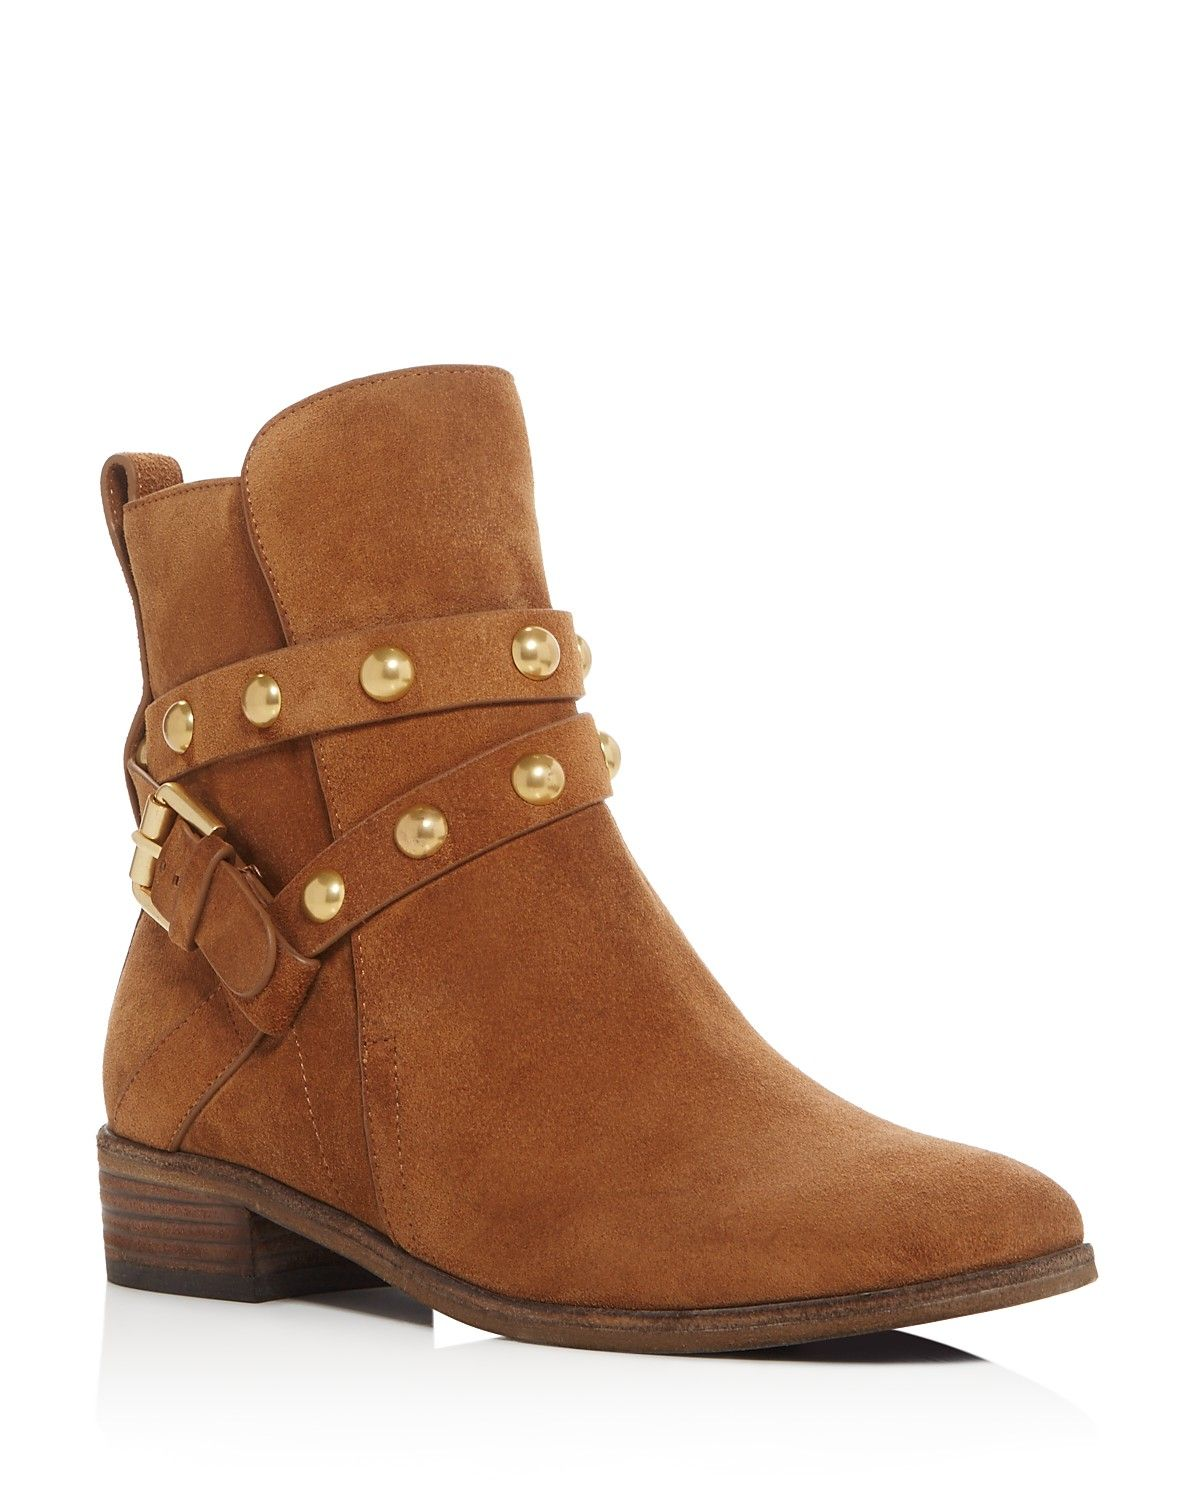 d11834c66349 See By Chloé Janis Studded Strap Flat Booties